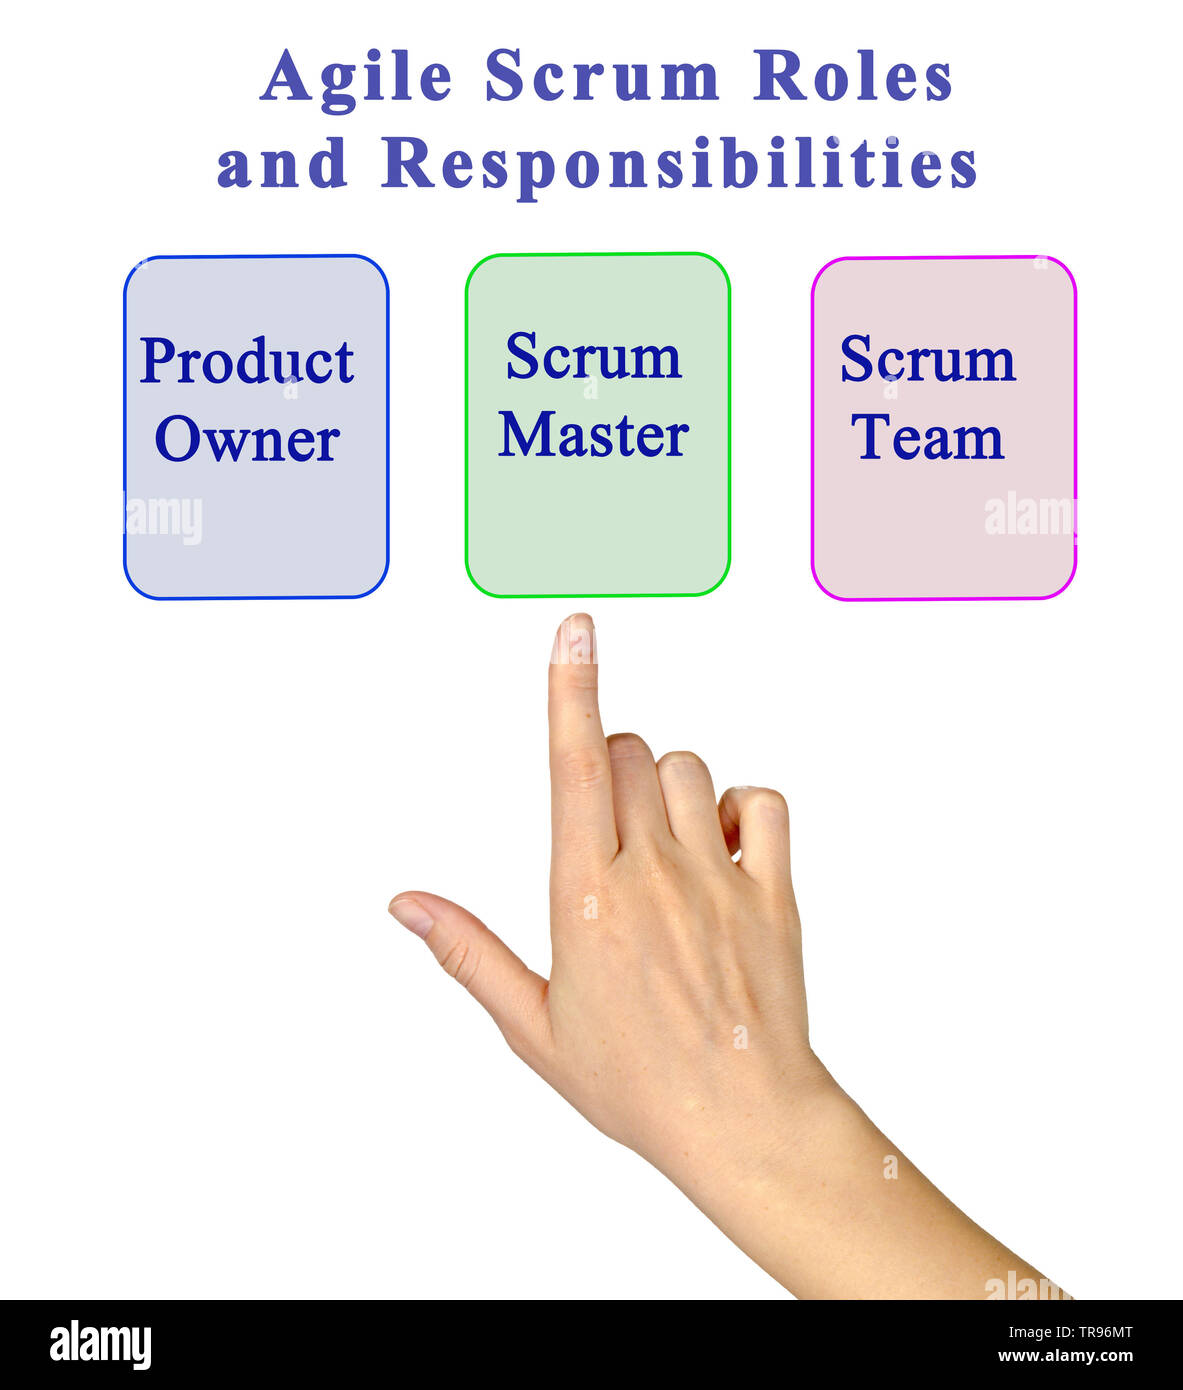 Agile Scrum Roles And Responsibilities - Stock Image